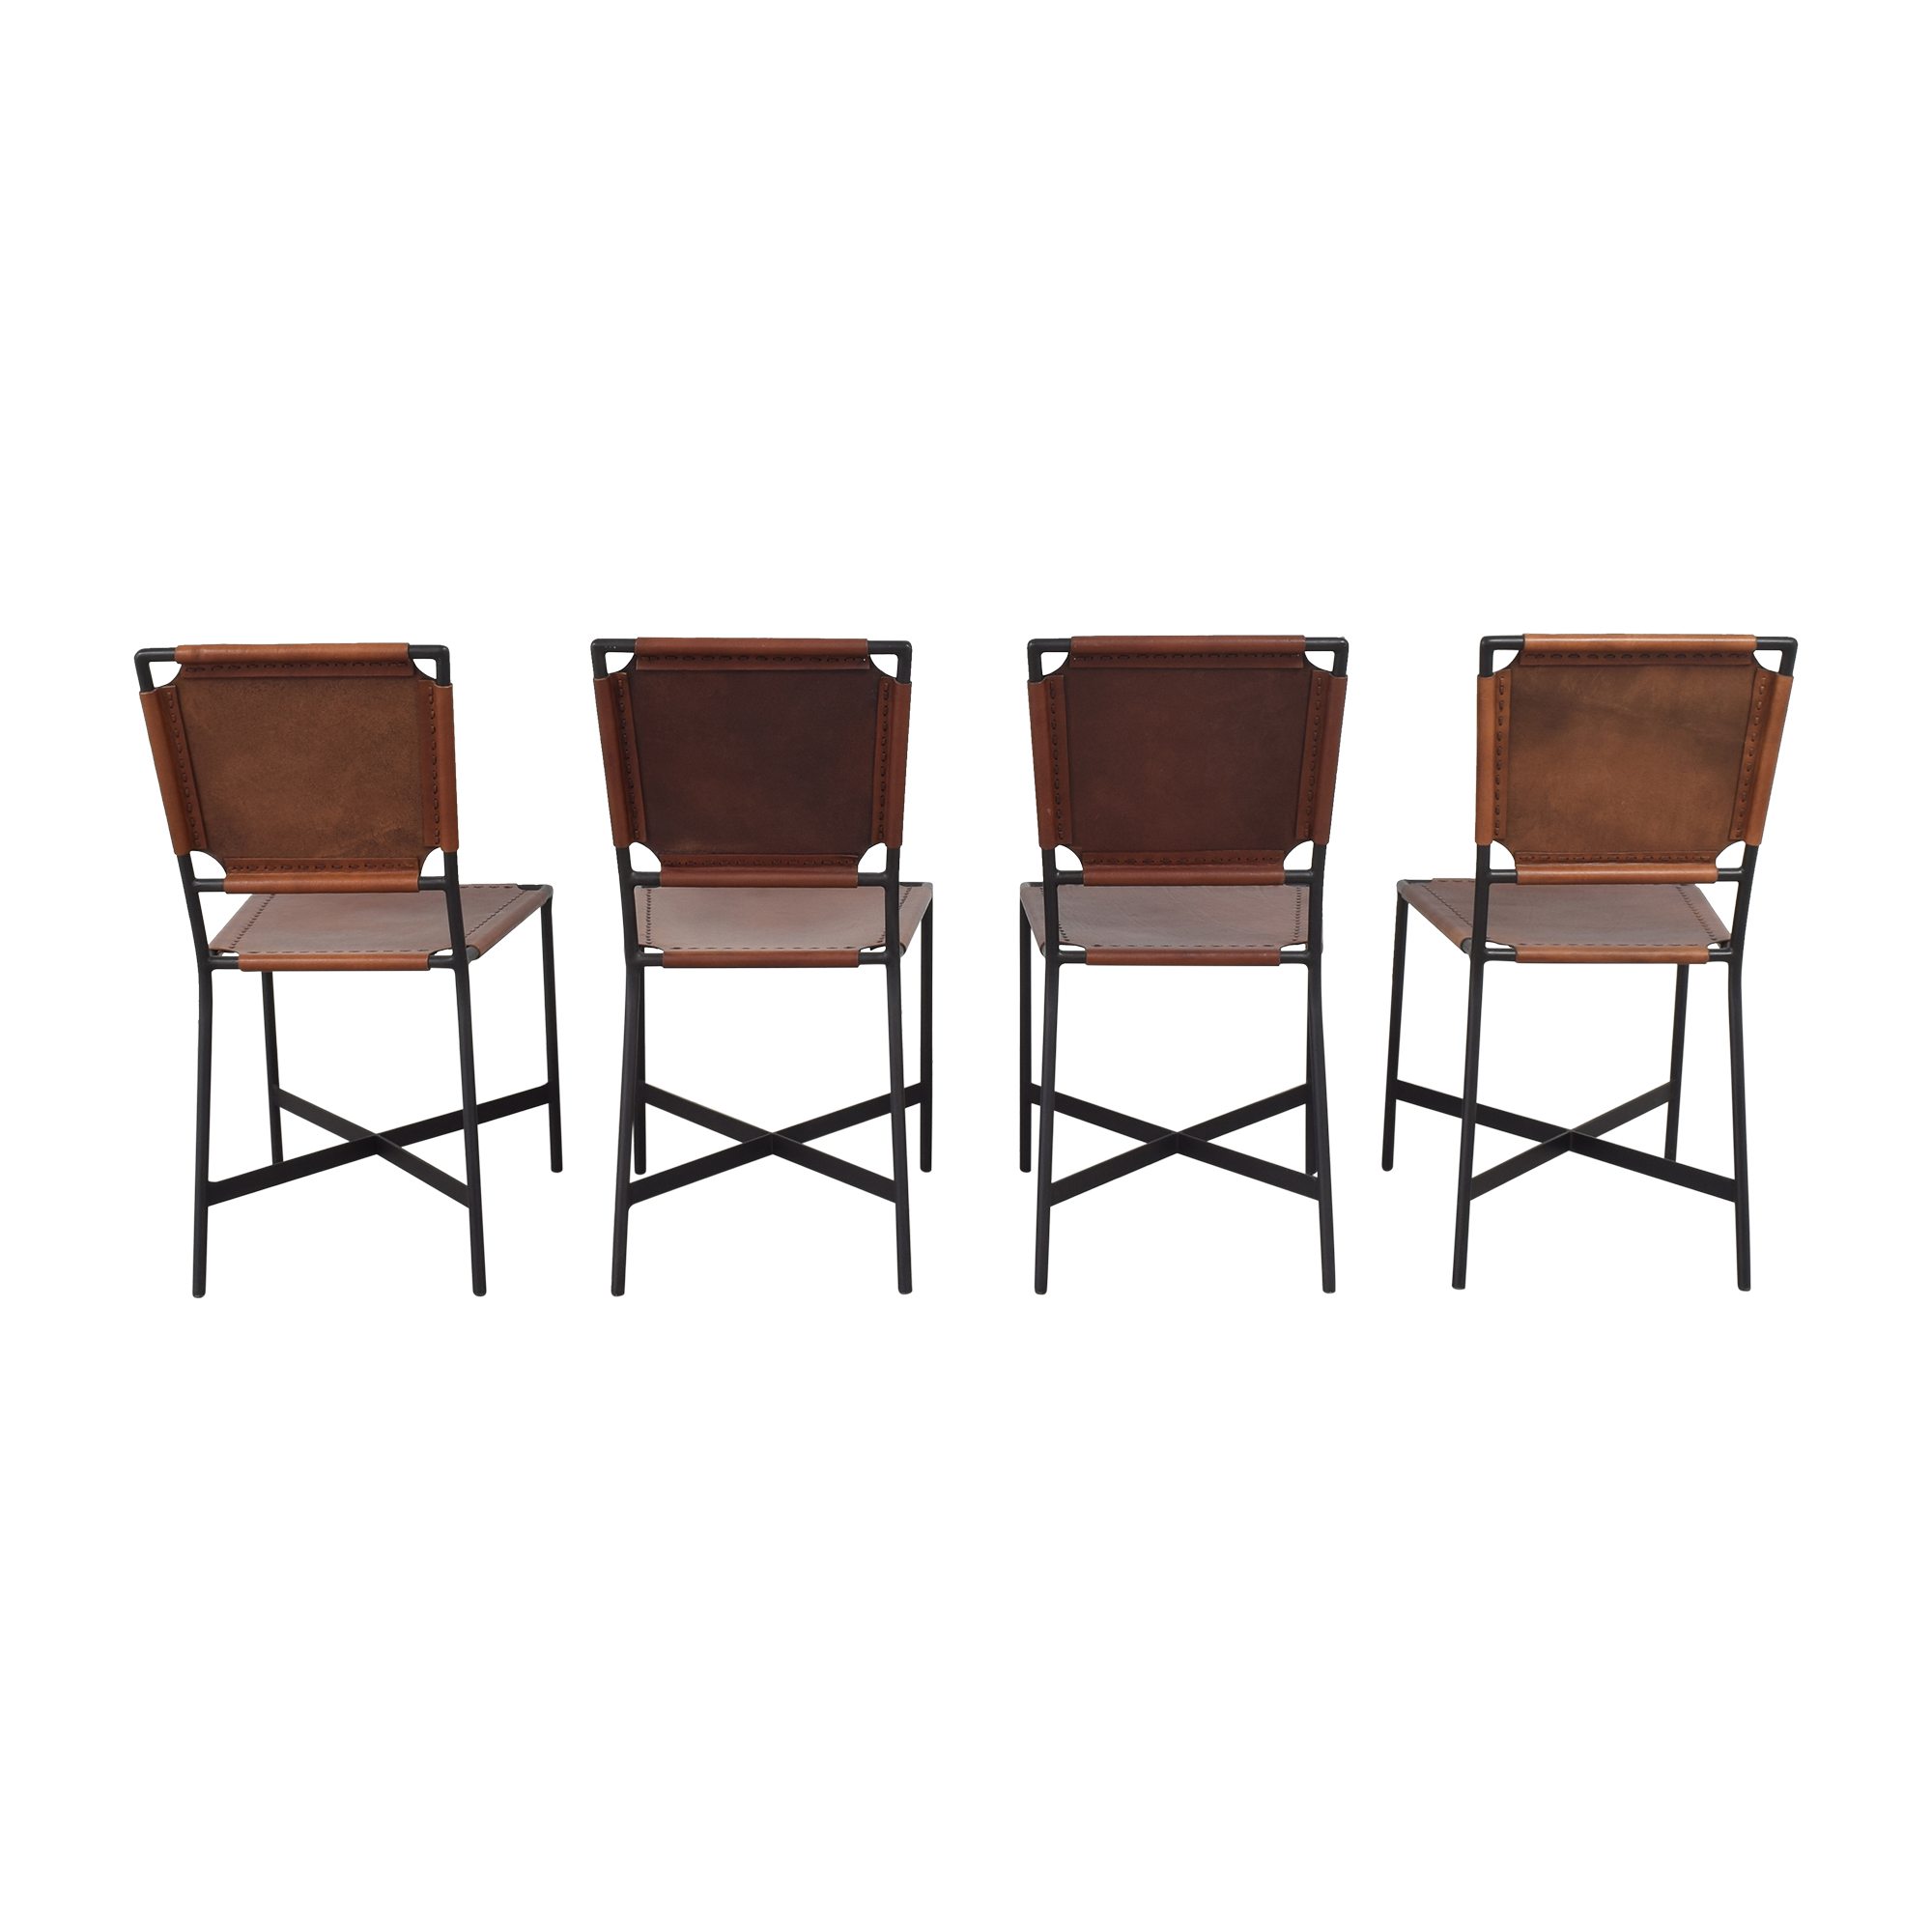 Crate & Barrel Crate & Barrel Laredo Dining Chairs used